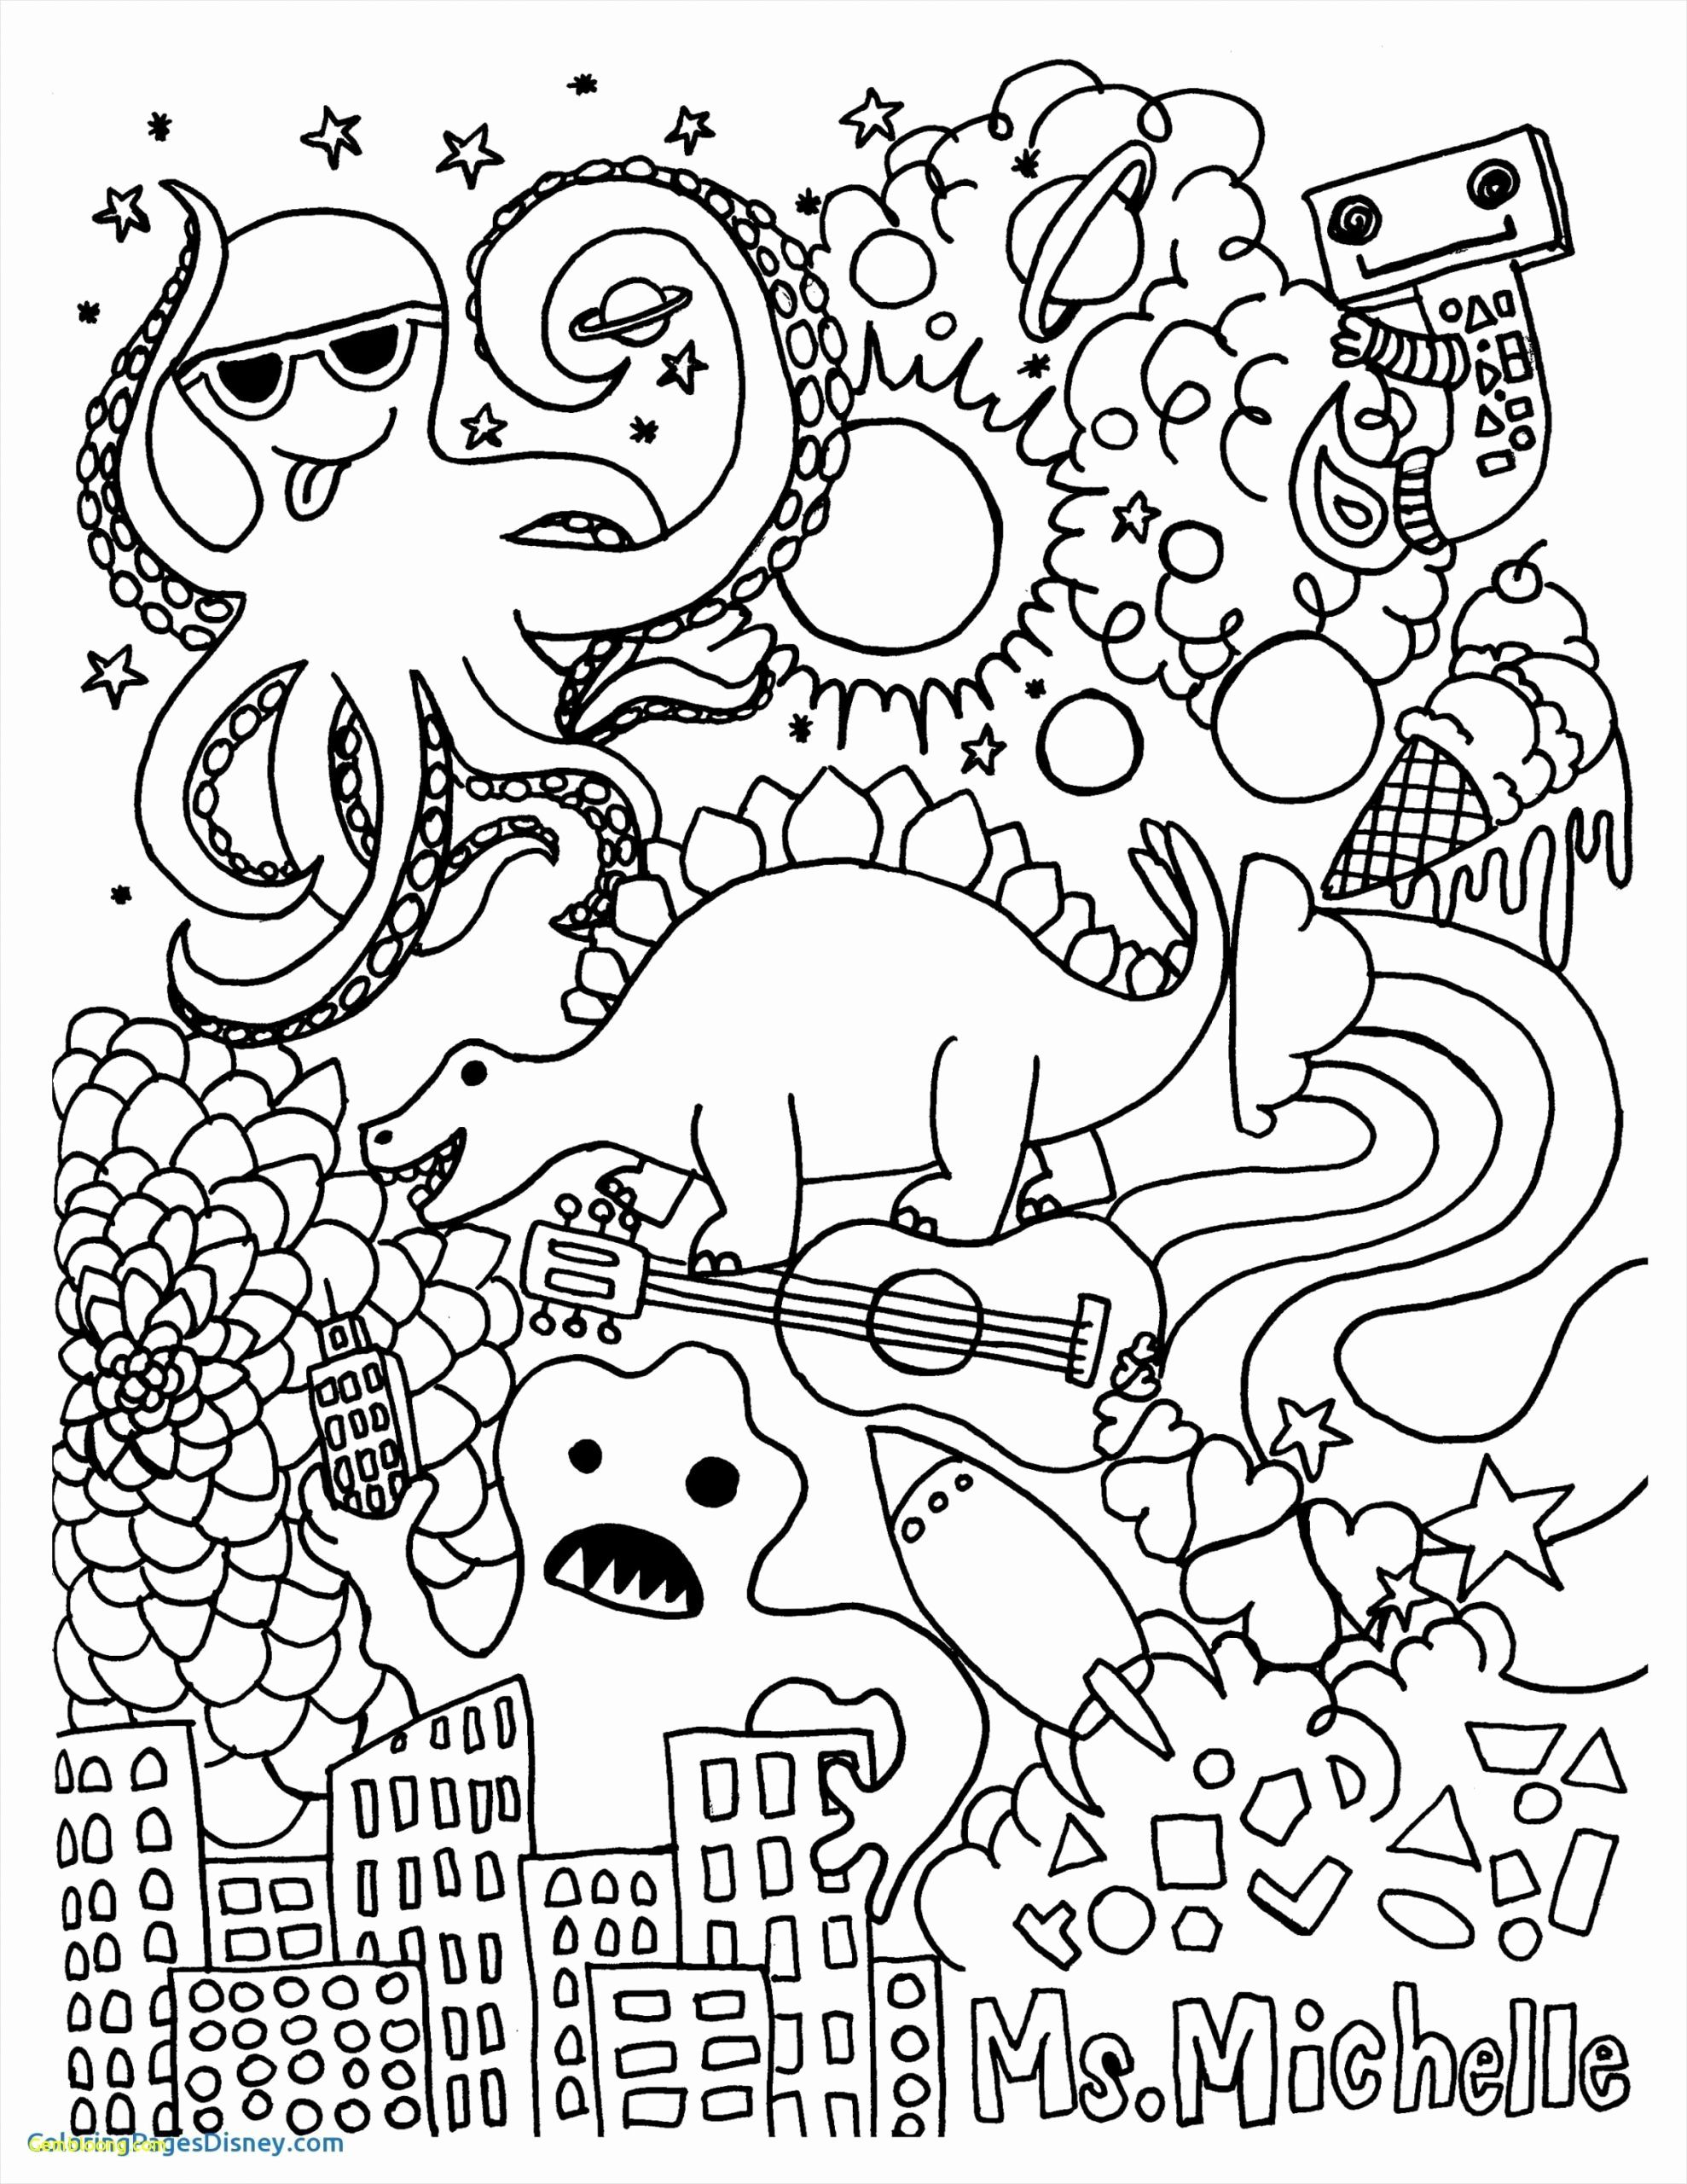 Vampire Knight Coloring Pages To Print New Coloring Page For Kids Remarkable Castle In 2020 Coloring Pages Inspirational Alphabet Coloring Pages Mandala Coloring Pages